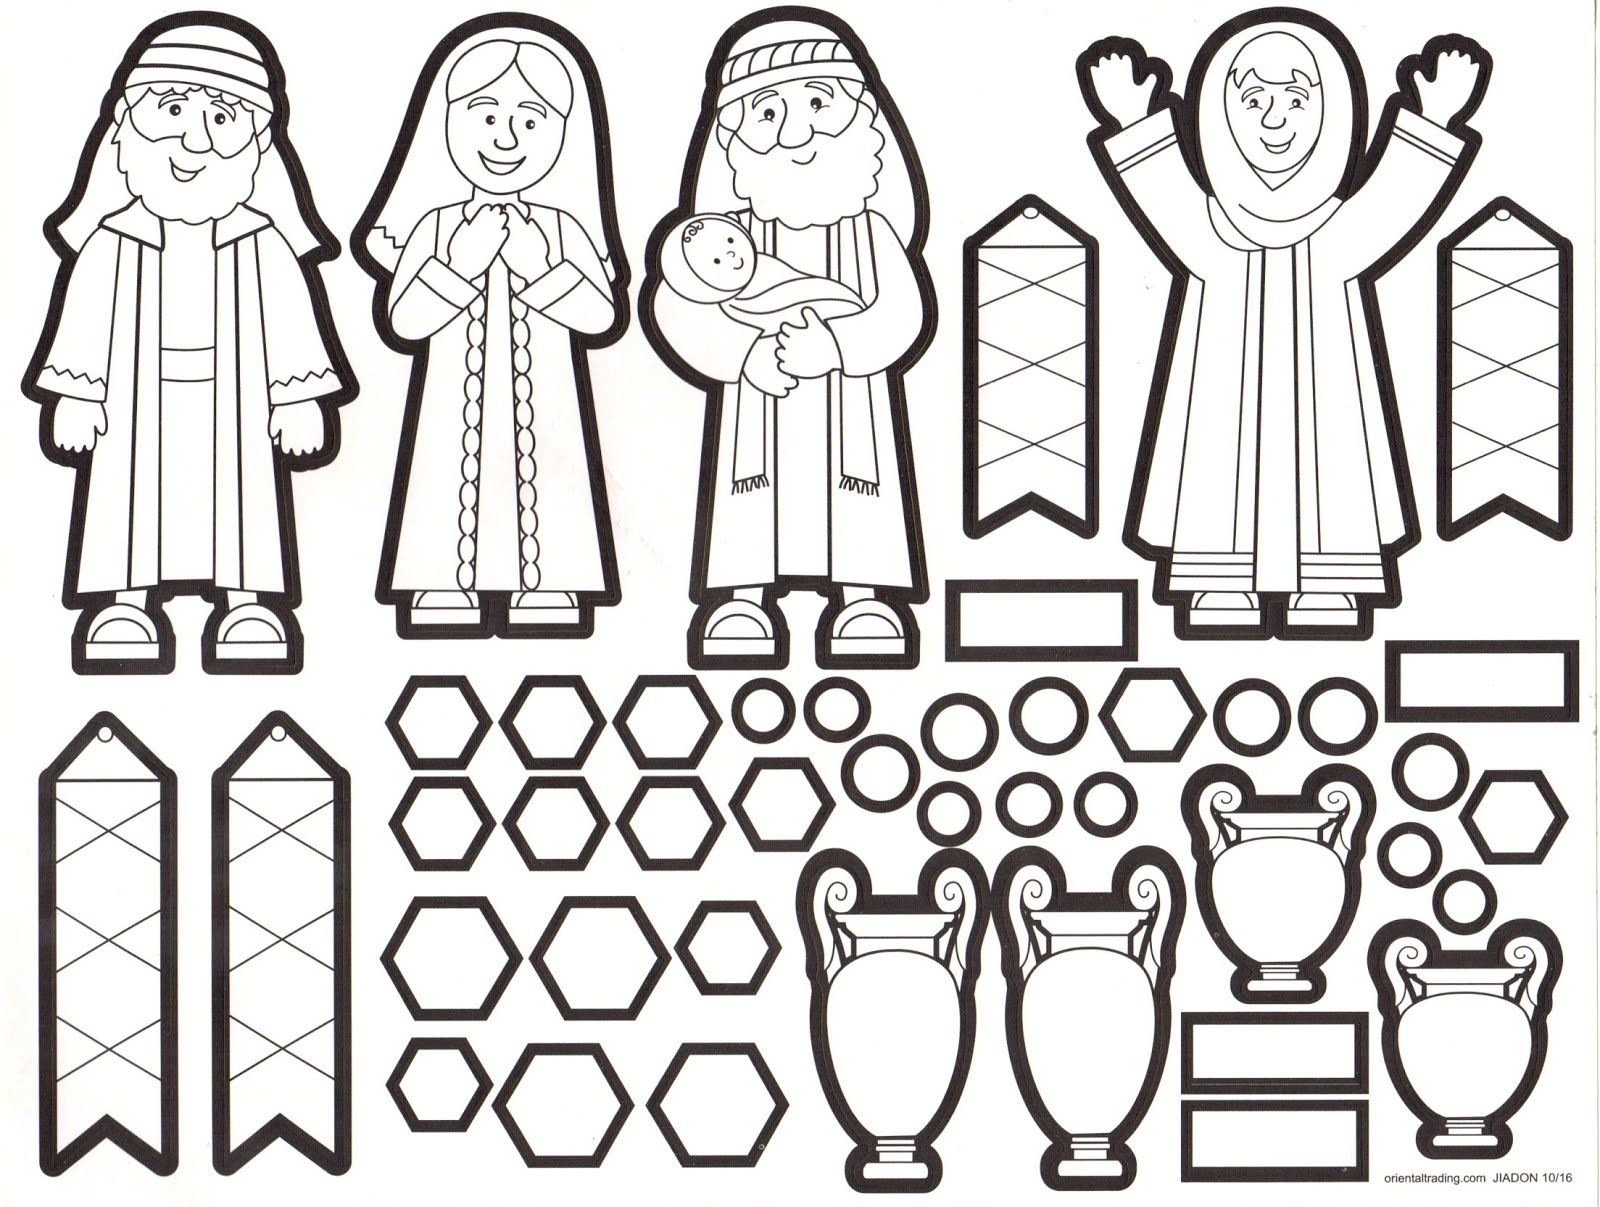 Petersham Bible Book & Tract Depot: Colour Your Own Simeon & Anna ...